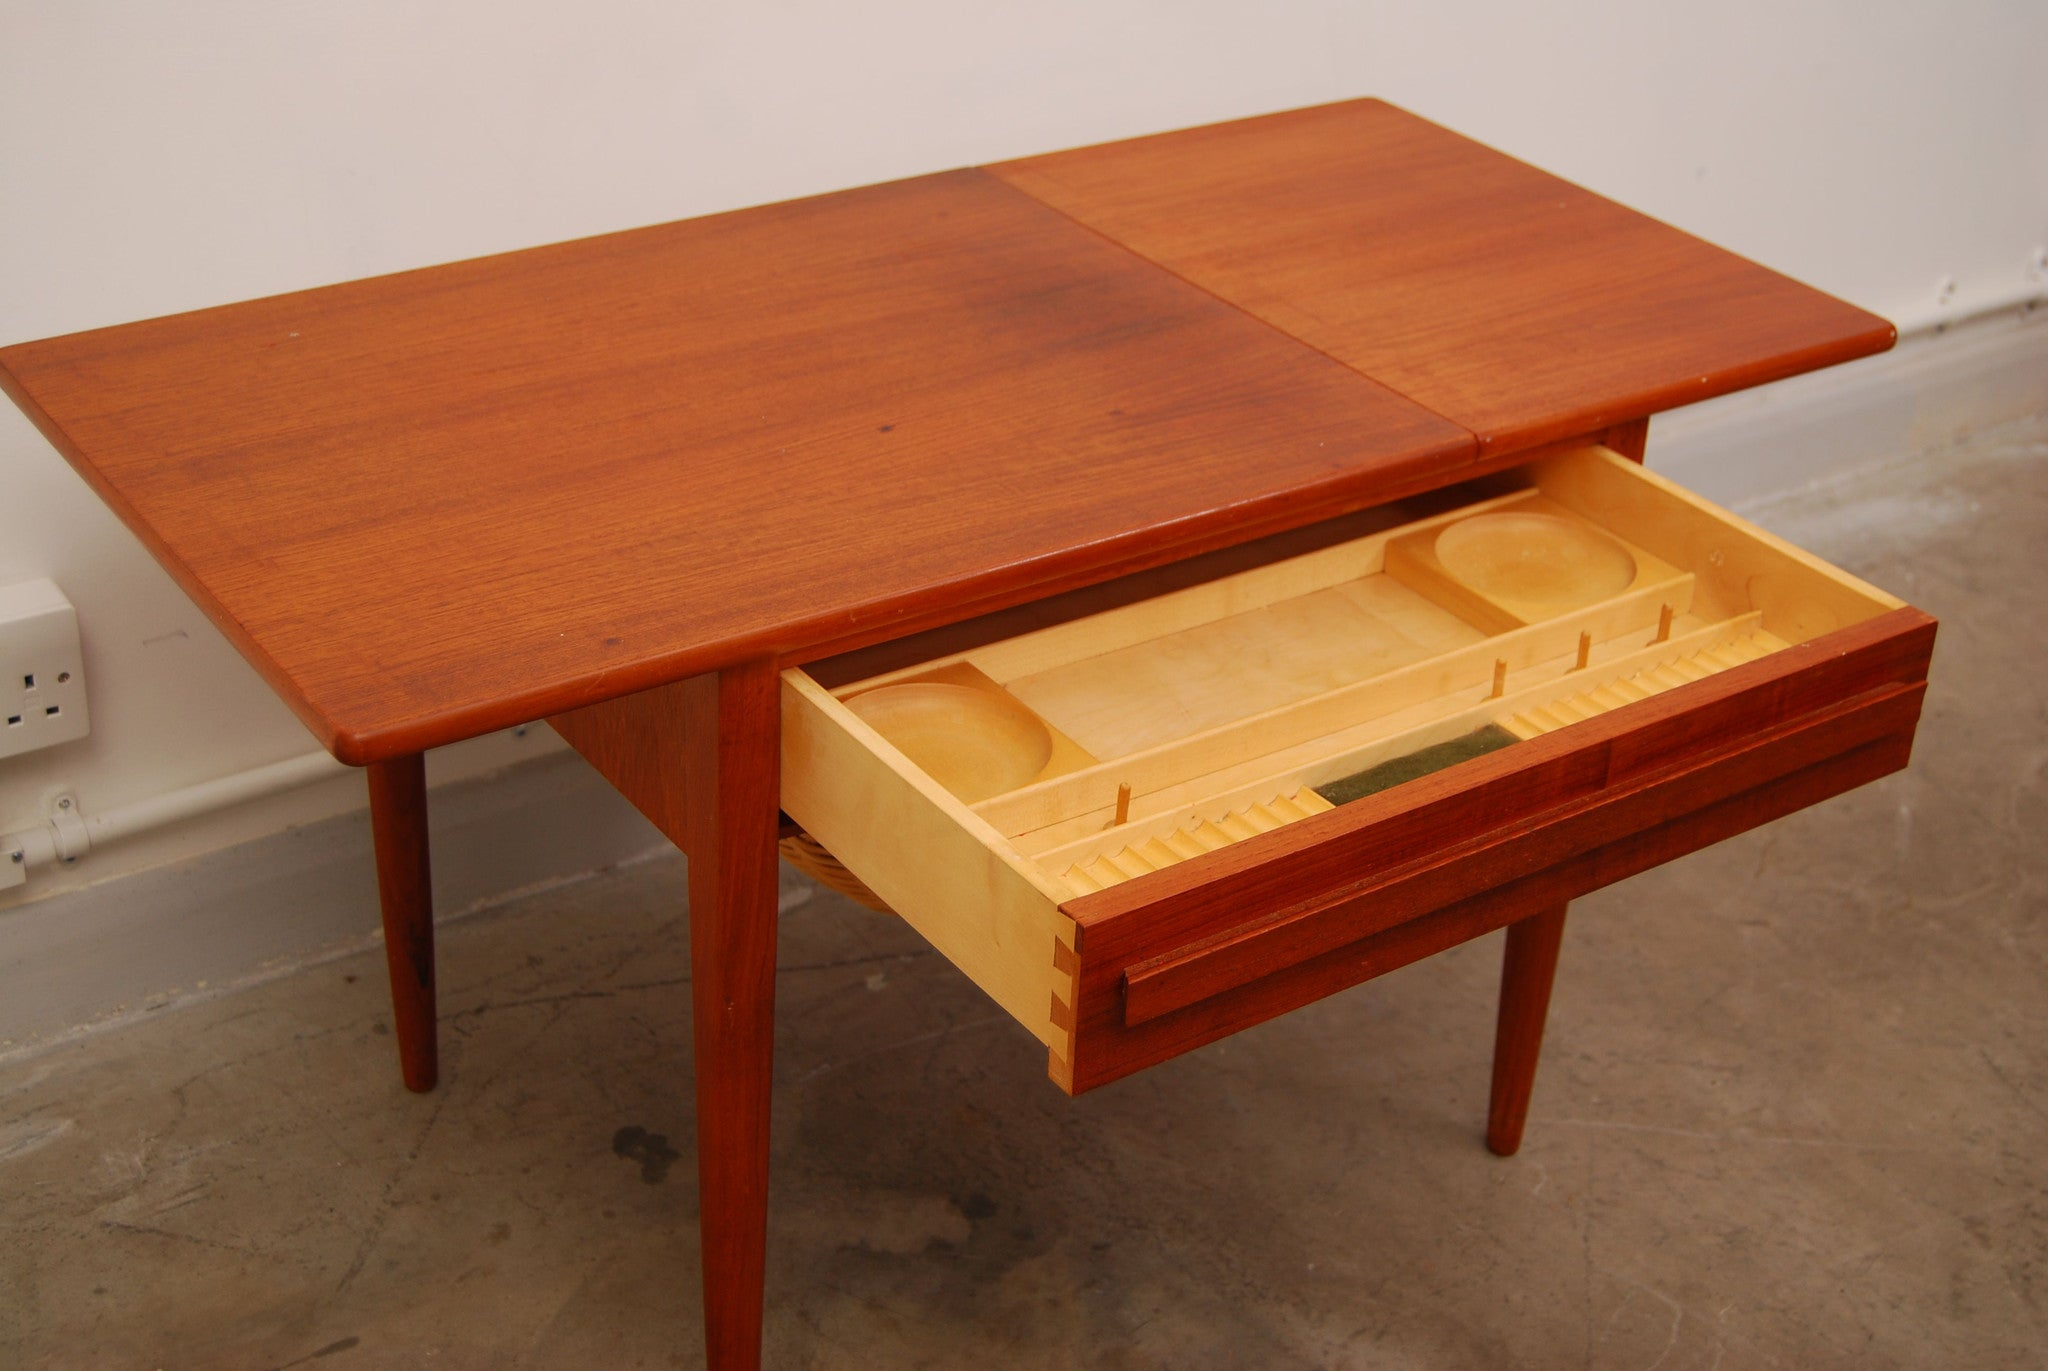 Teak sewing table